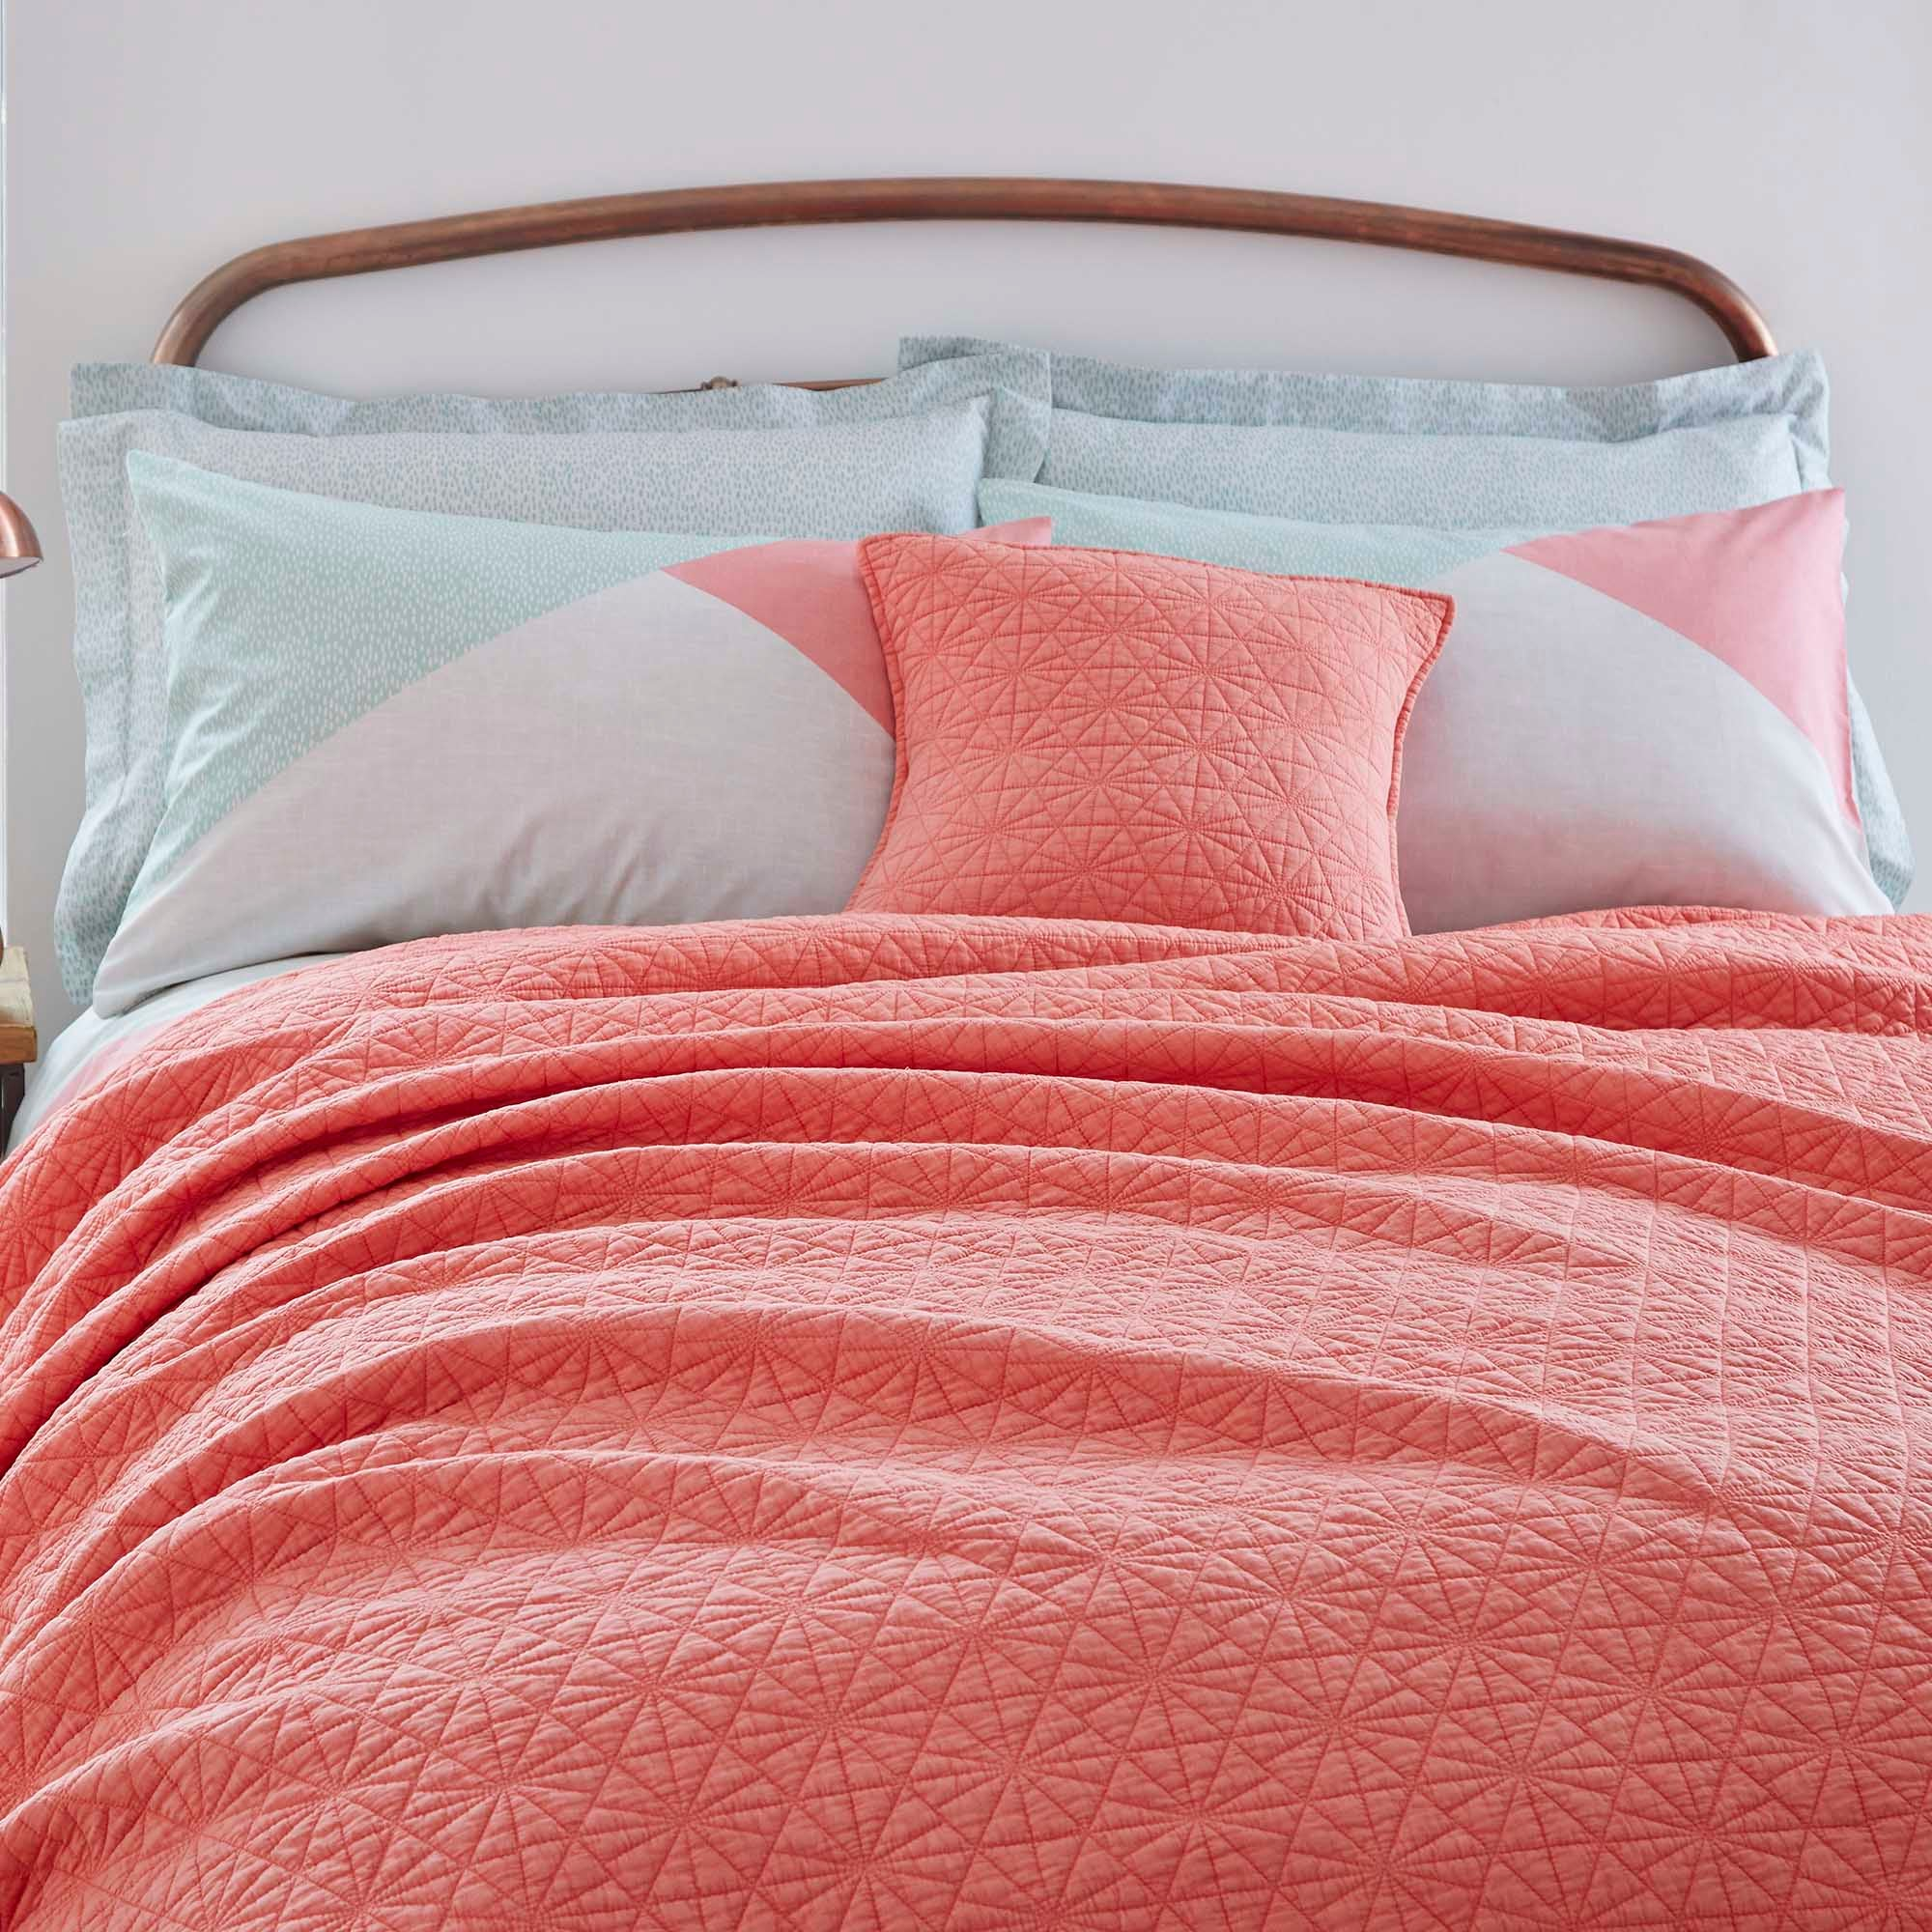 Quilted Coral Bedspread Coral Red